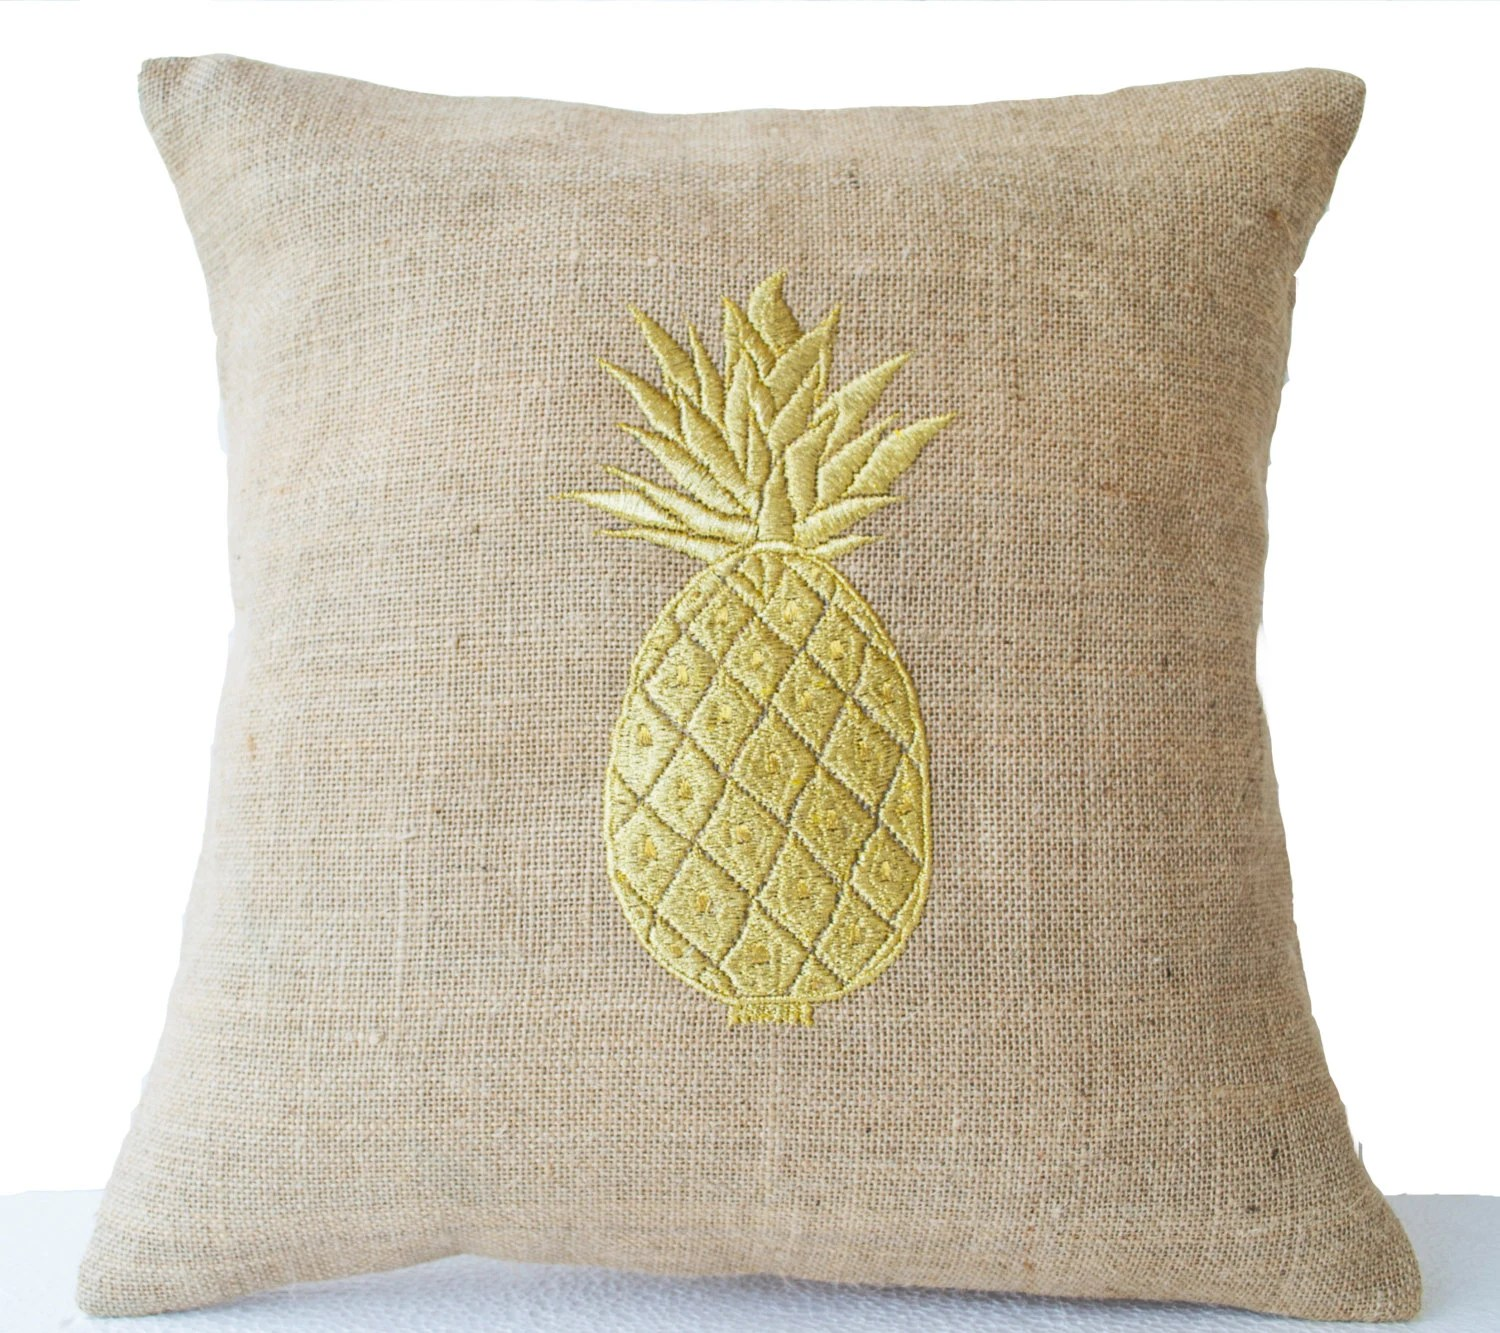 Burlap Pillow Covers with Pineapple Embroidered Gold Pillows